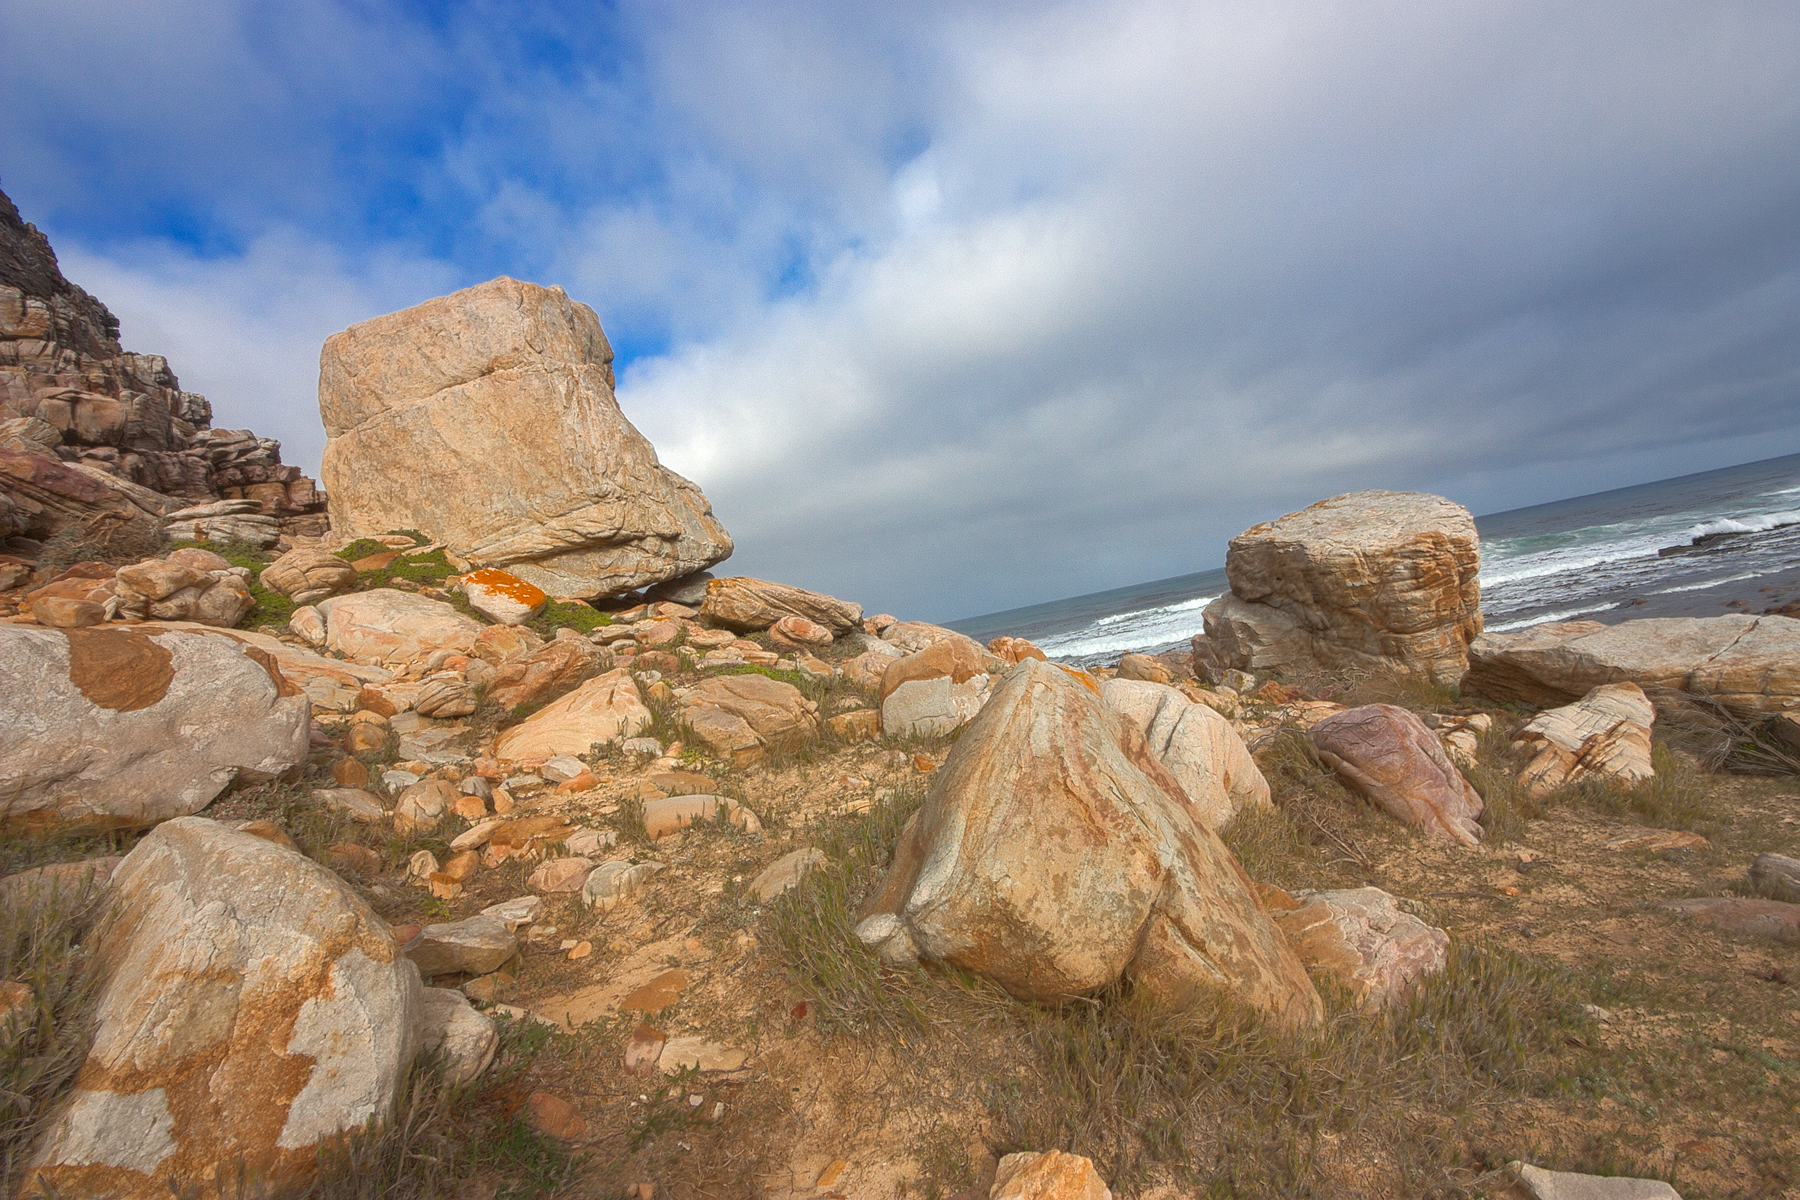 Cape cliff stones - hdr photo